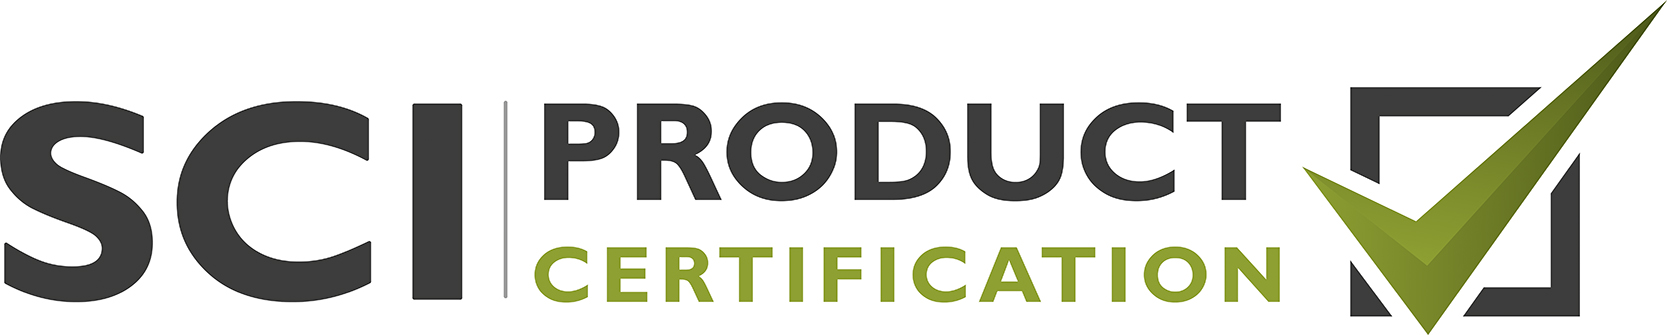 SCI Product Certification Logo